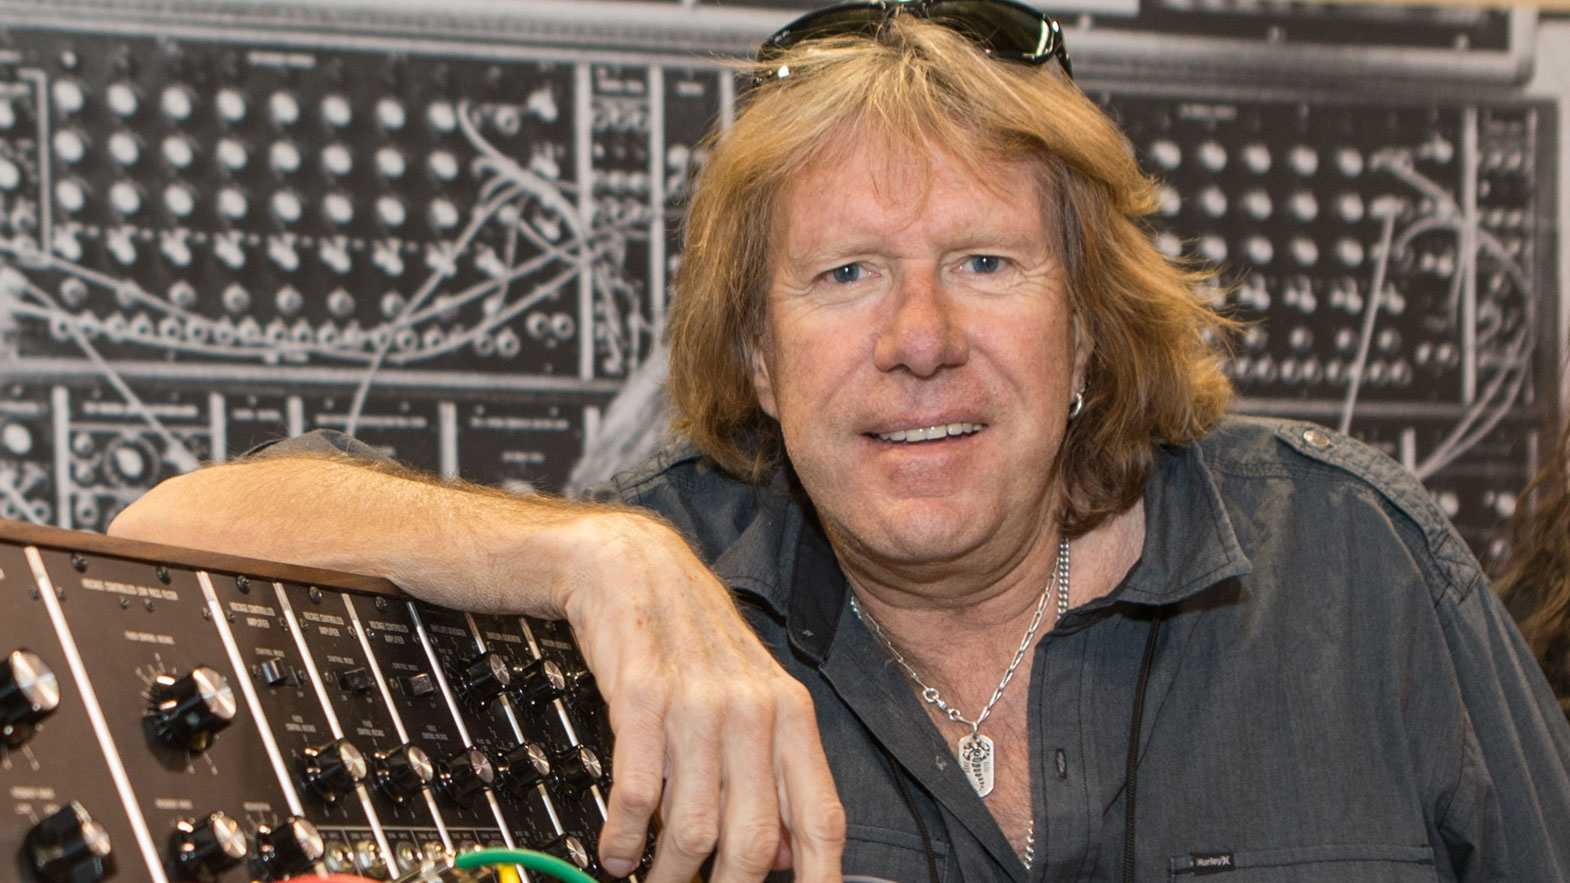 Keith Emerson, of Emerson, Lake & Palmer, attends the 2015 National Association of Music Merchants (NAMM) show at the Anaheim Convention Center on Friday, January 23, 2015 in Anaheim, Calif.